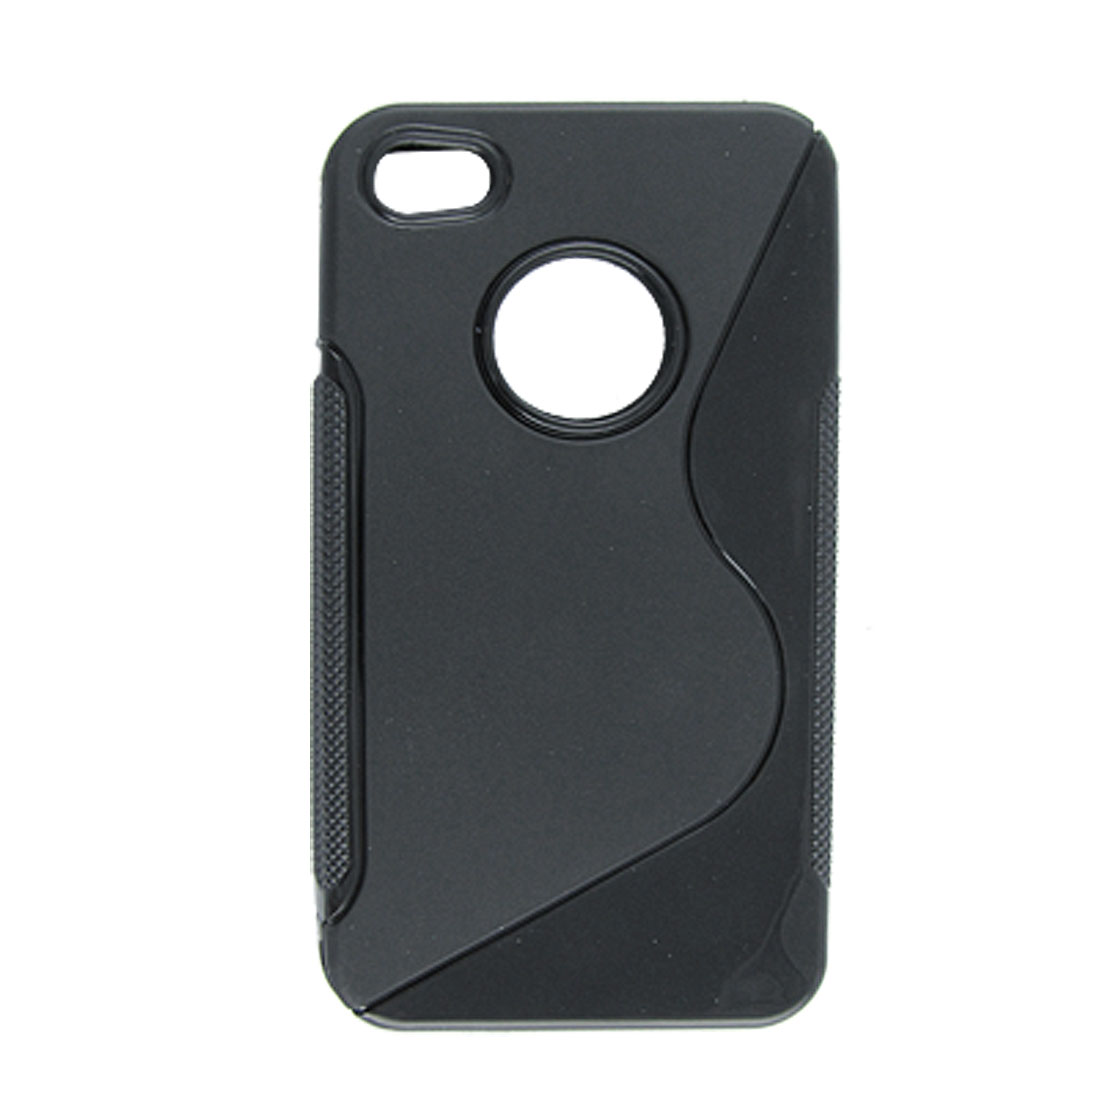 Black Anti-glare Soft Plastic Case for Apple iPhone 4 4G